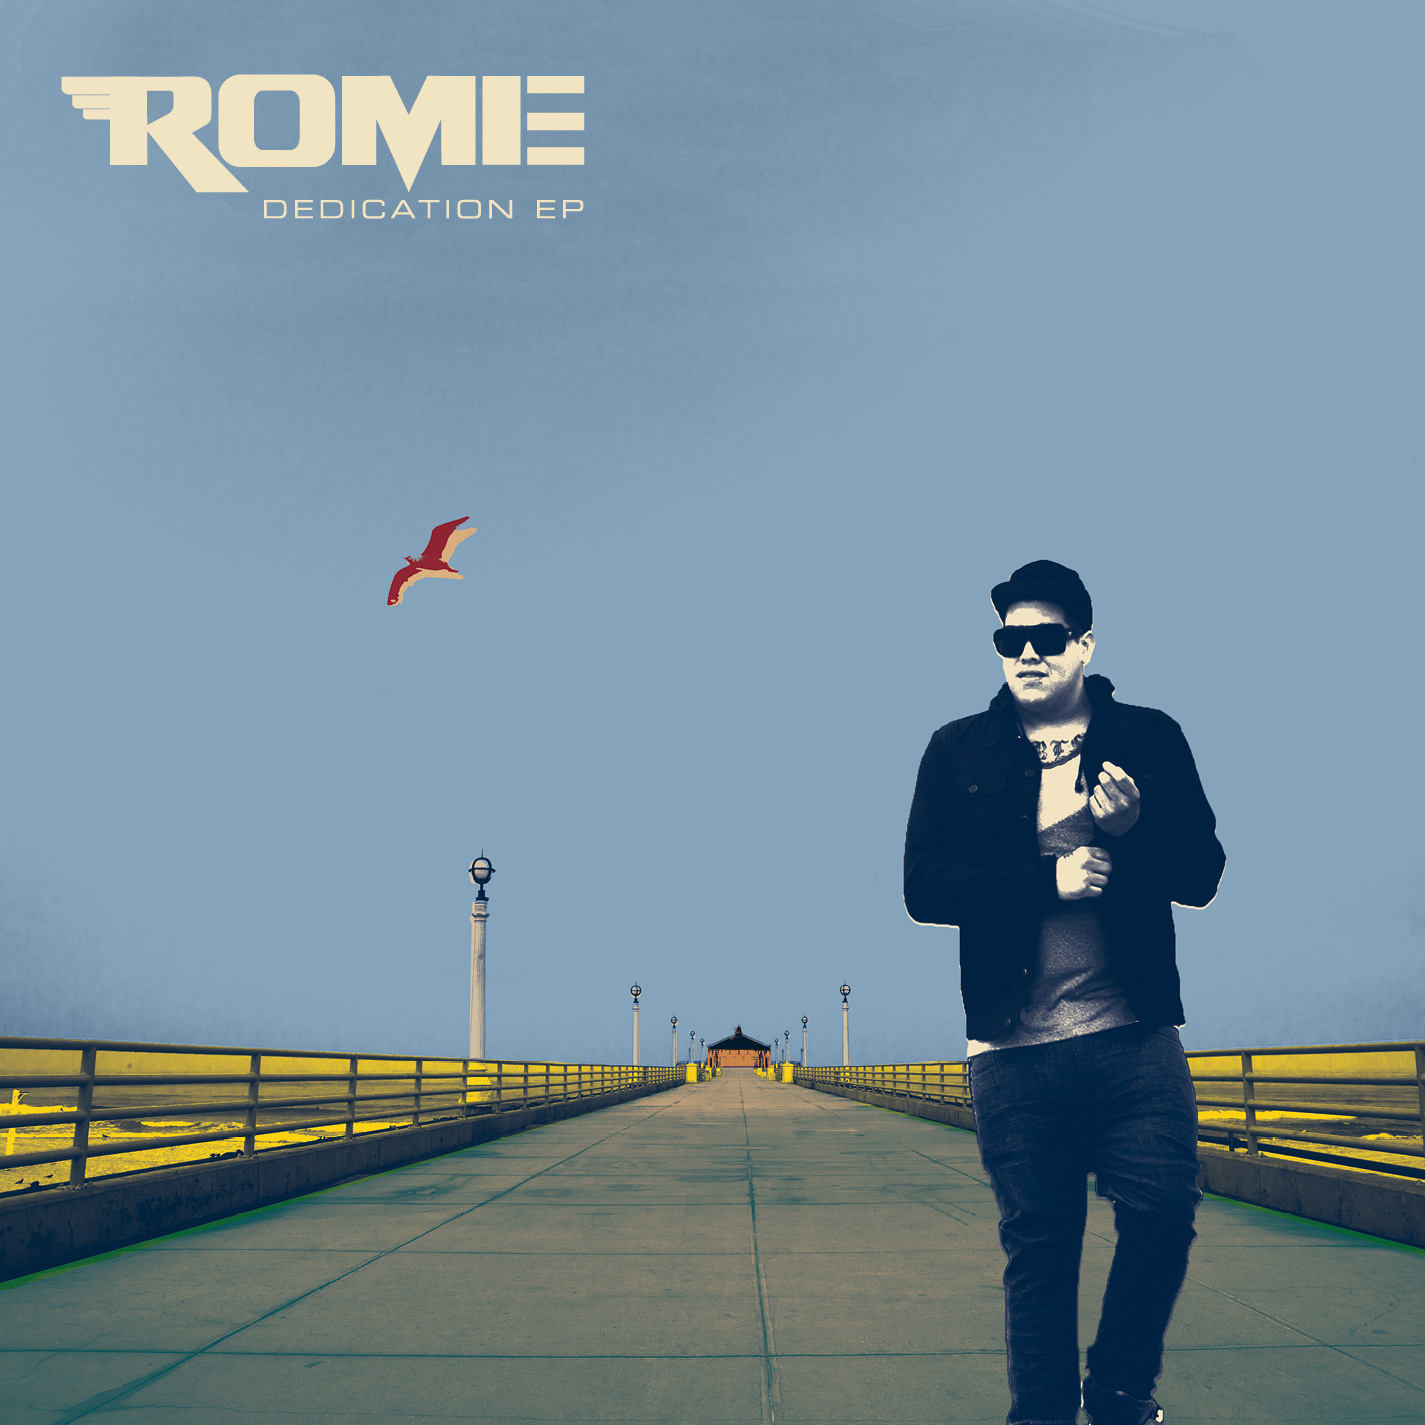 rome.dedicationep